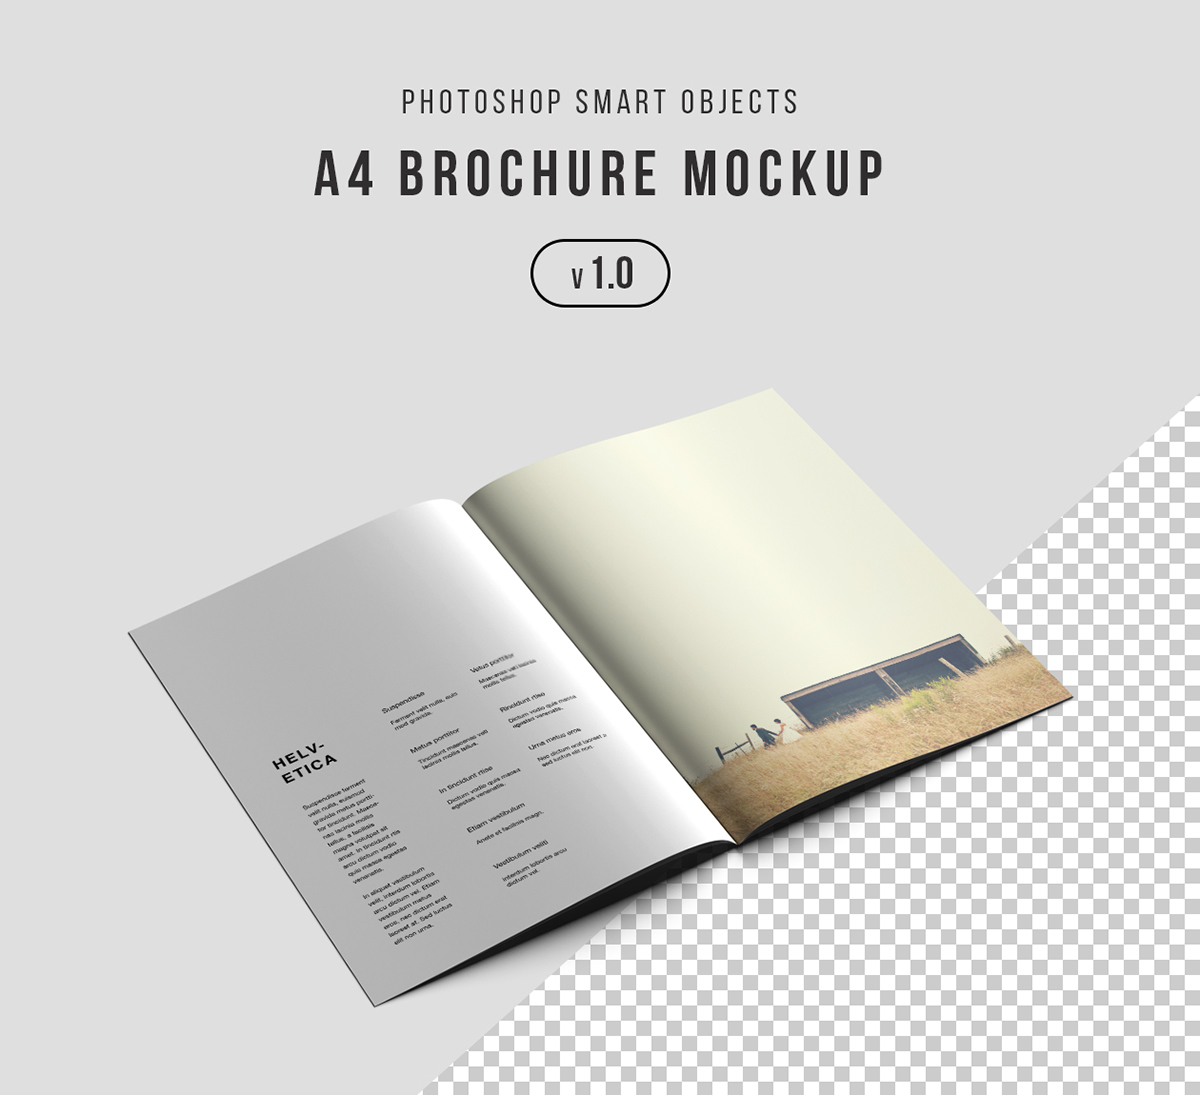 A4 Brochure Photoshop Mockup Psd On Behance